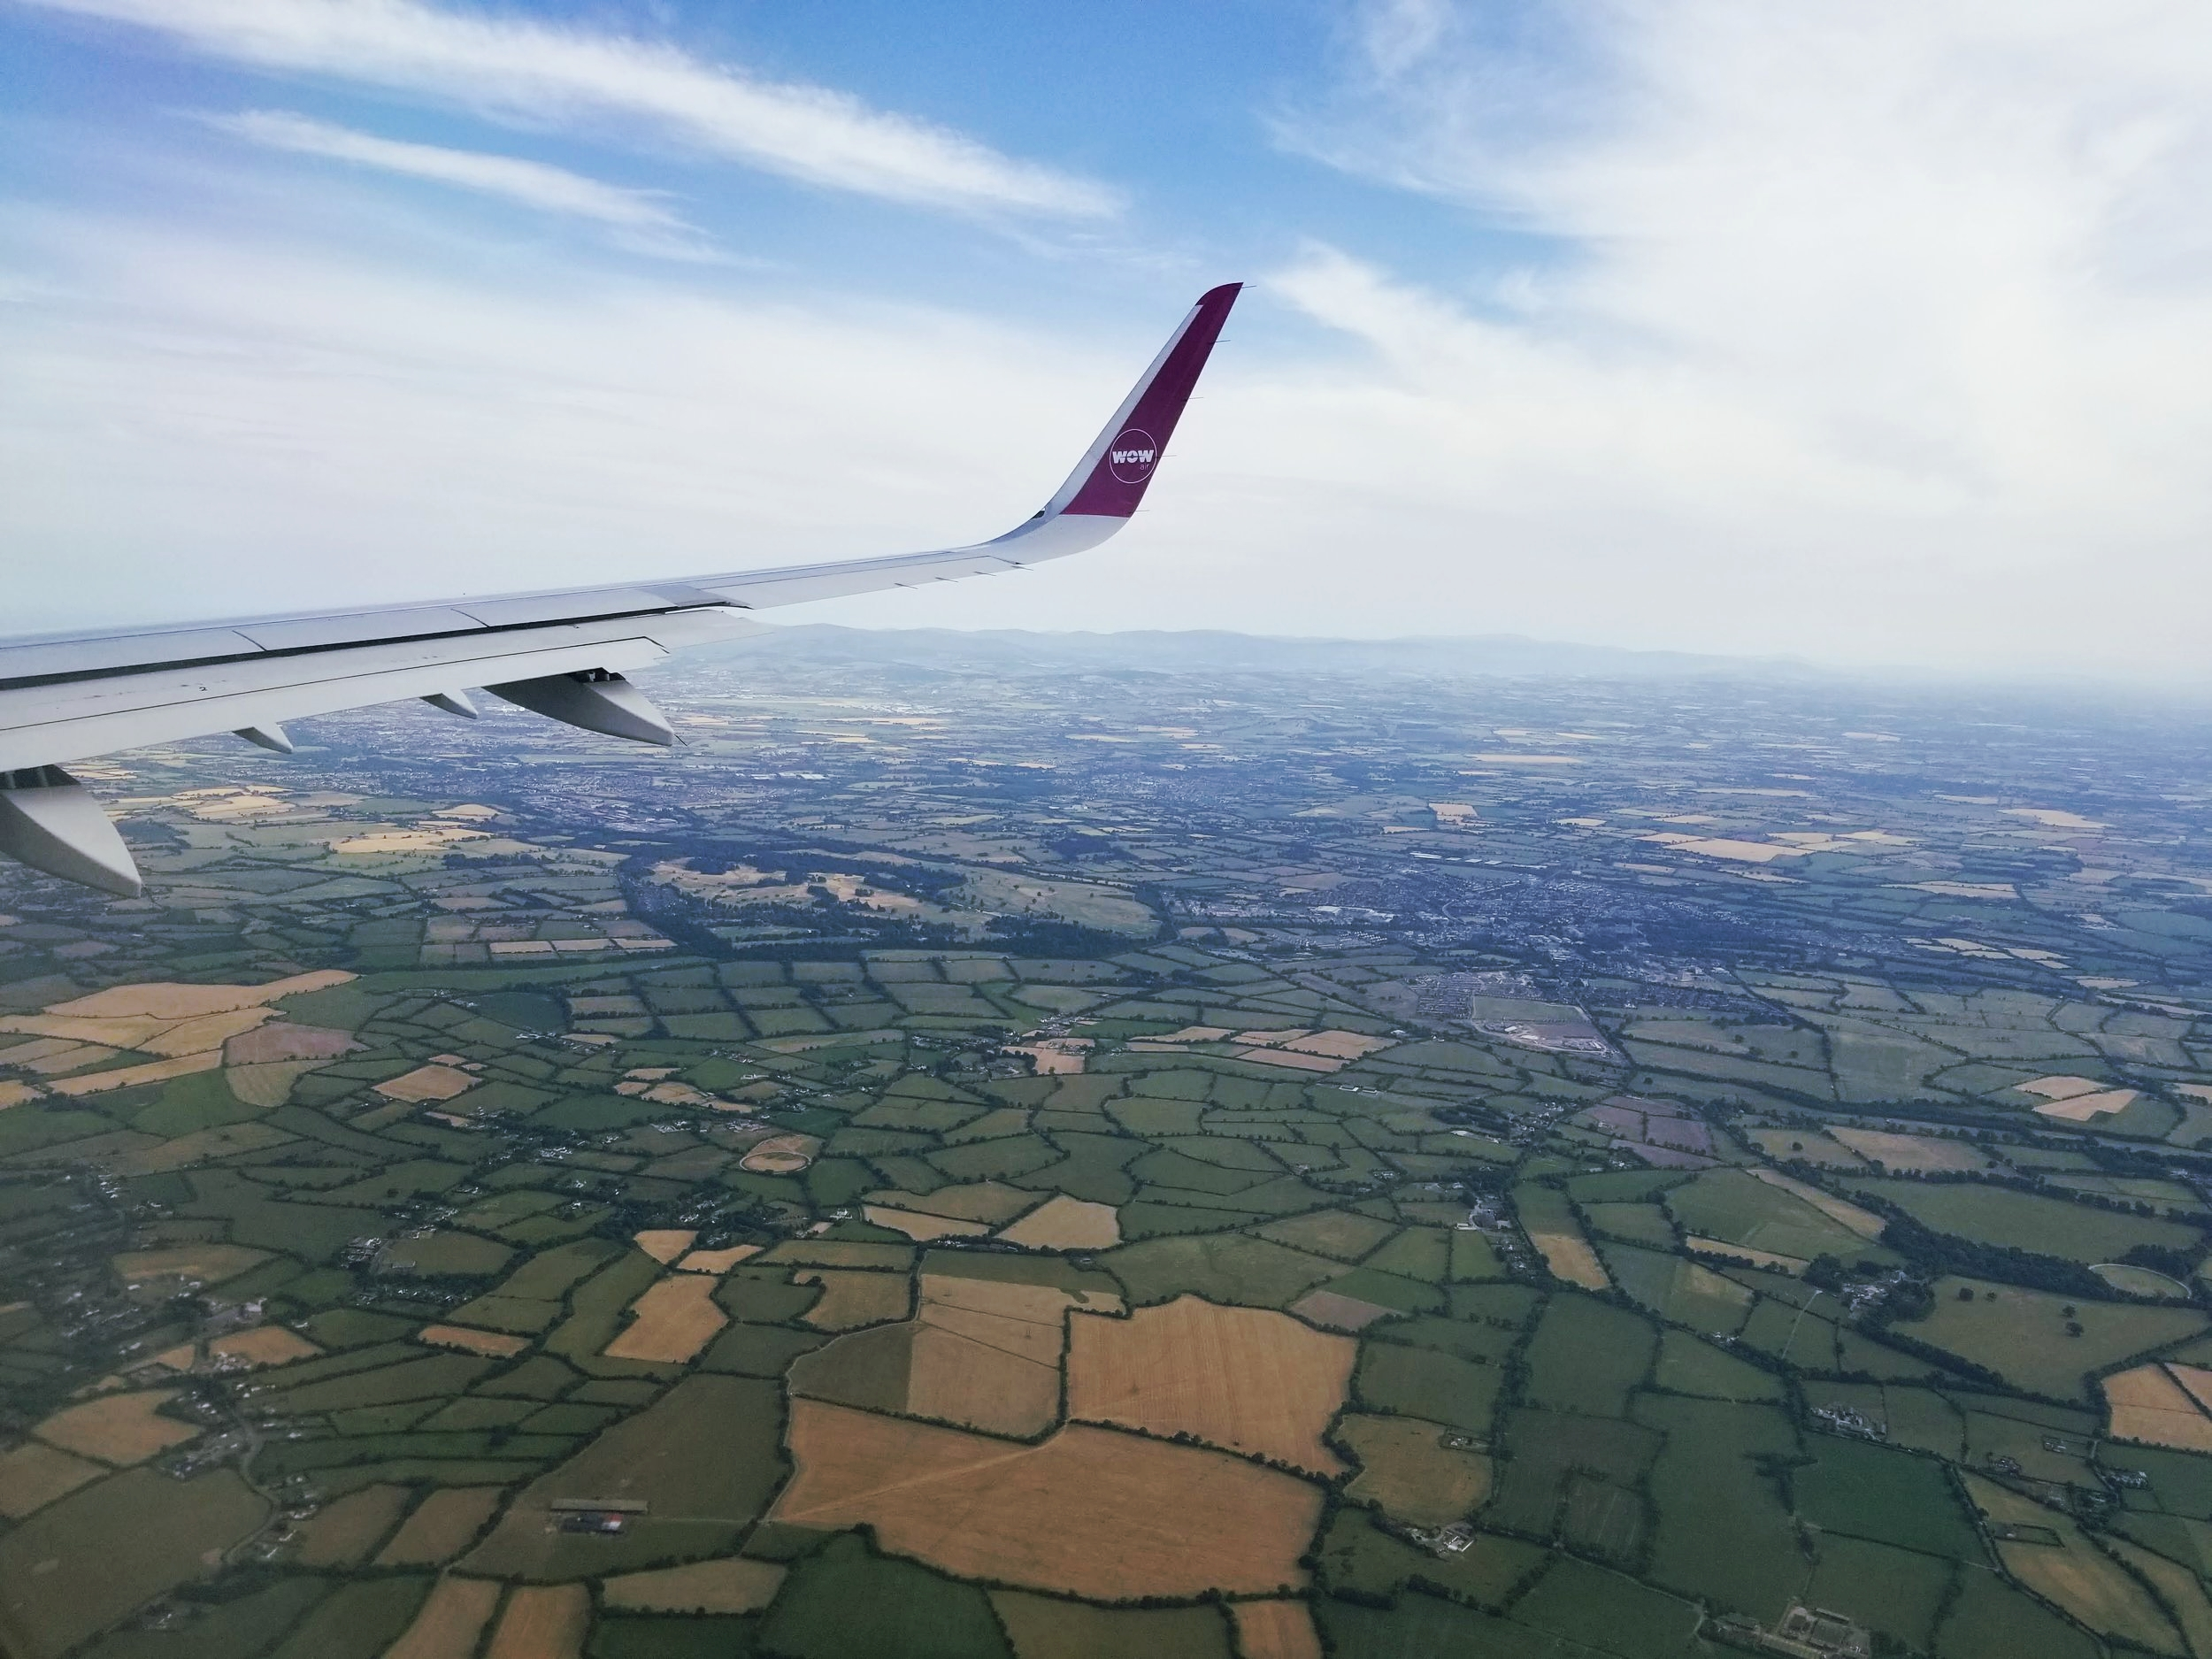 uprooted-traveler-dublin-vegan-guide-48-hours-plane-ireland.jpg